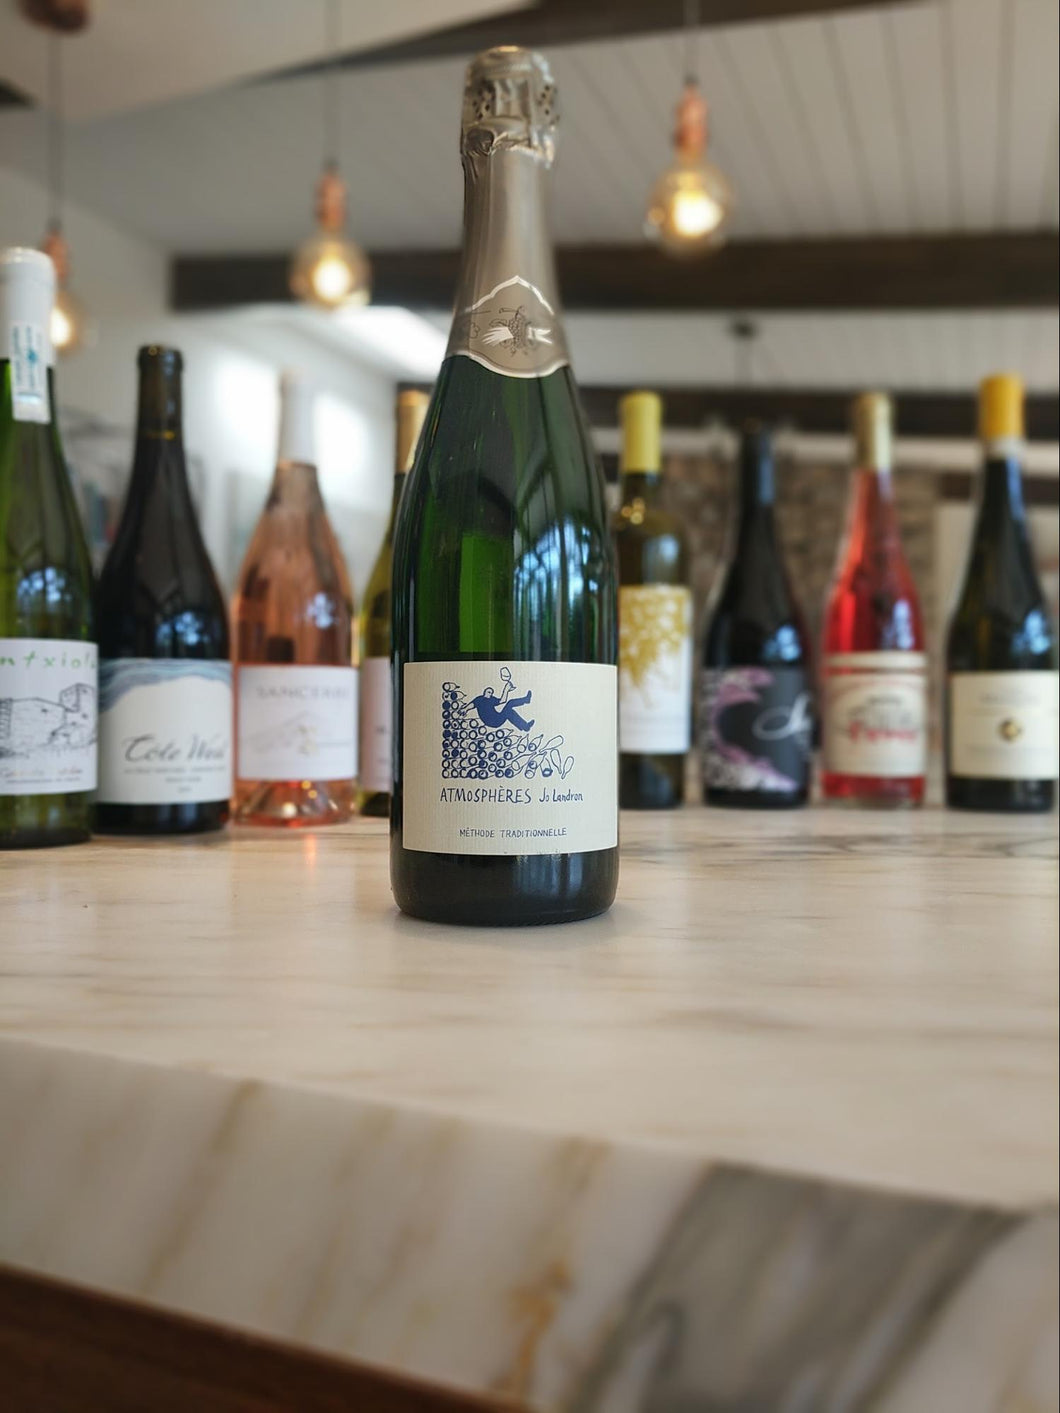 Jo Landron - NV 'Atmospheres' Sparkling White (Folle Blanche, Pinot Noir) - Loire Valley, France